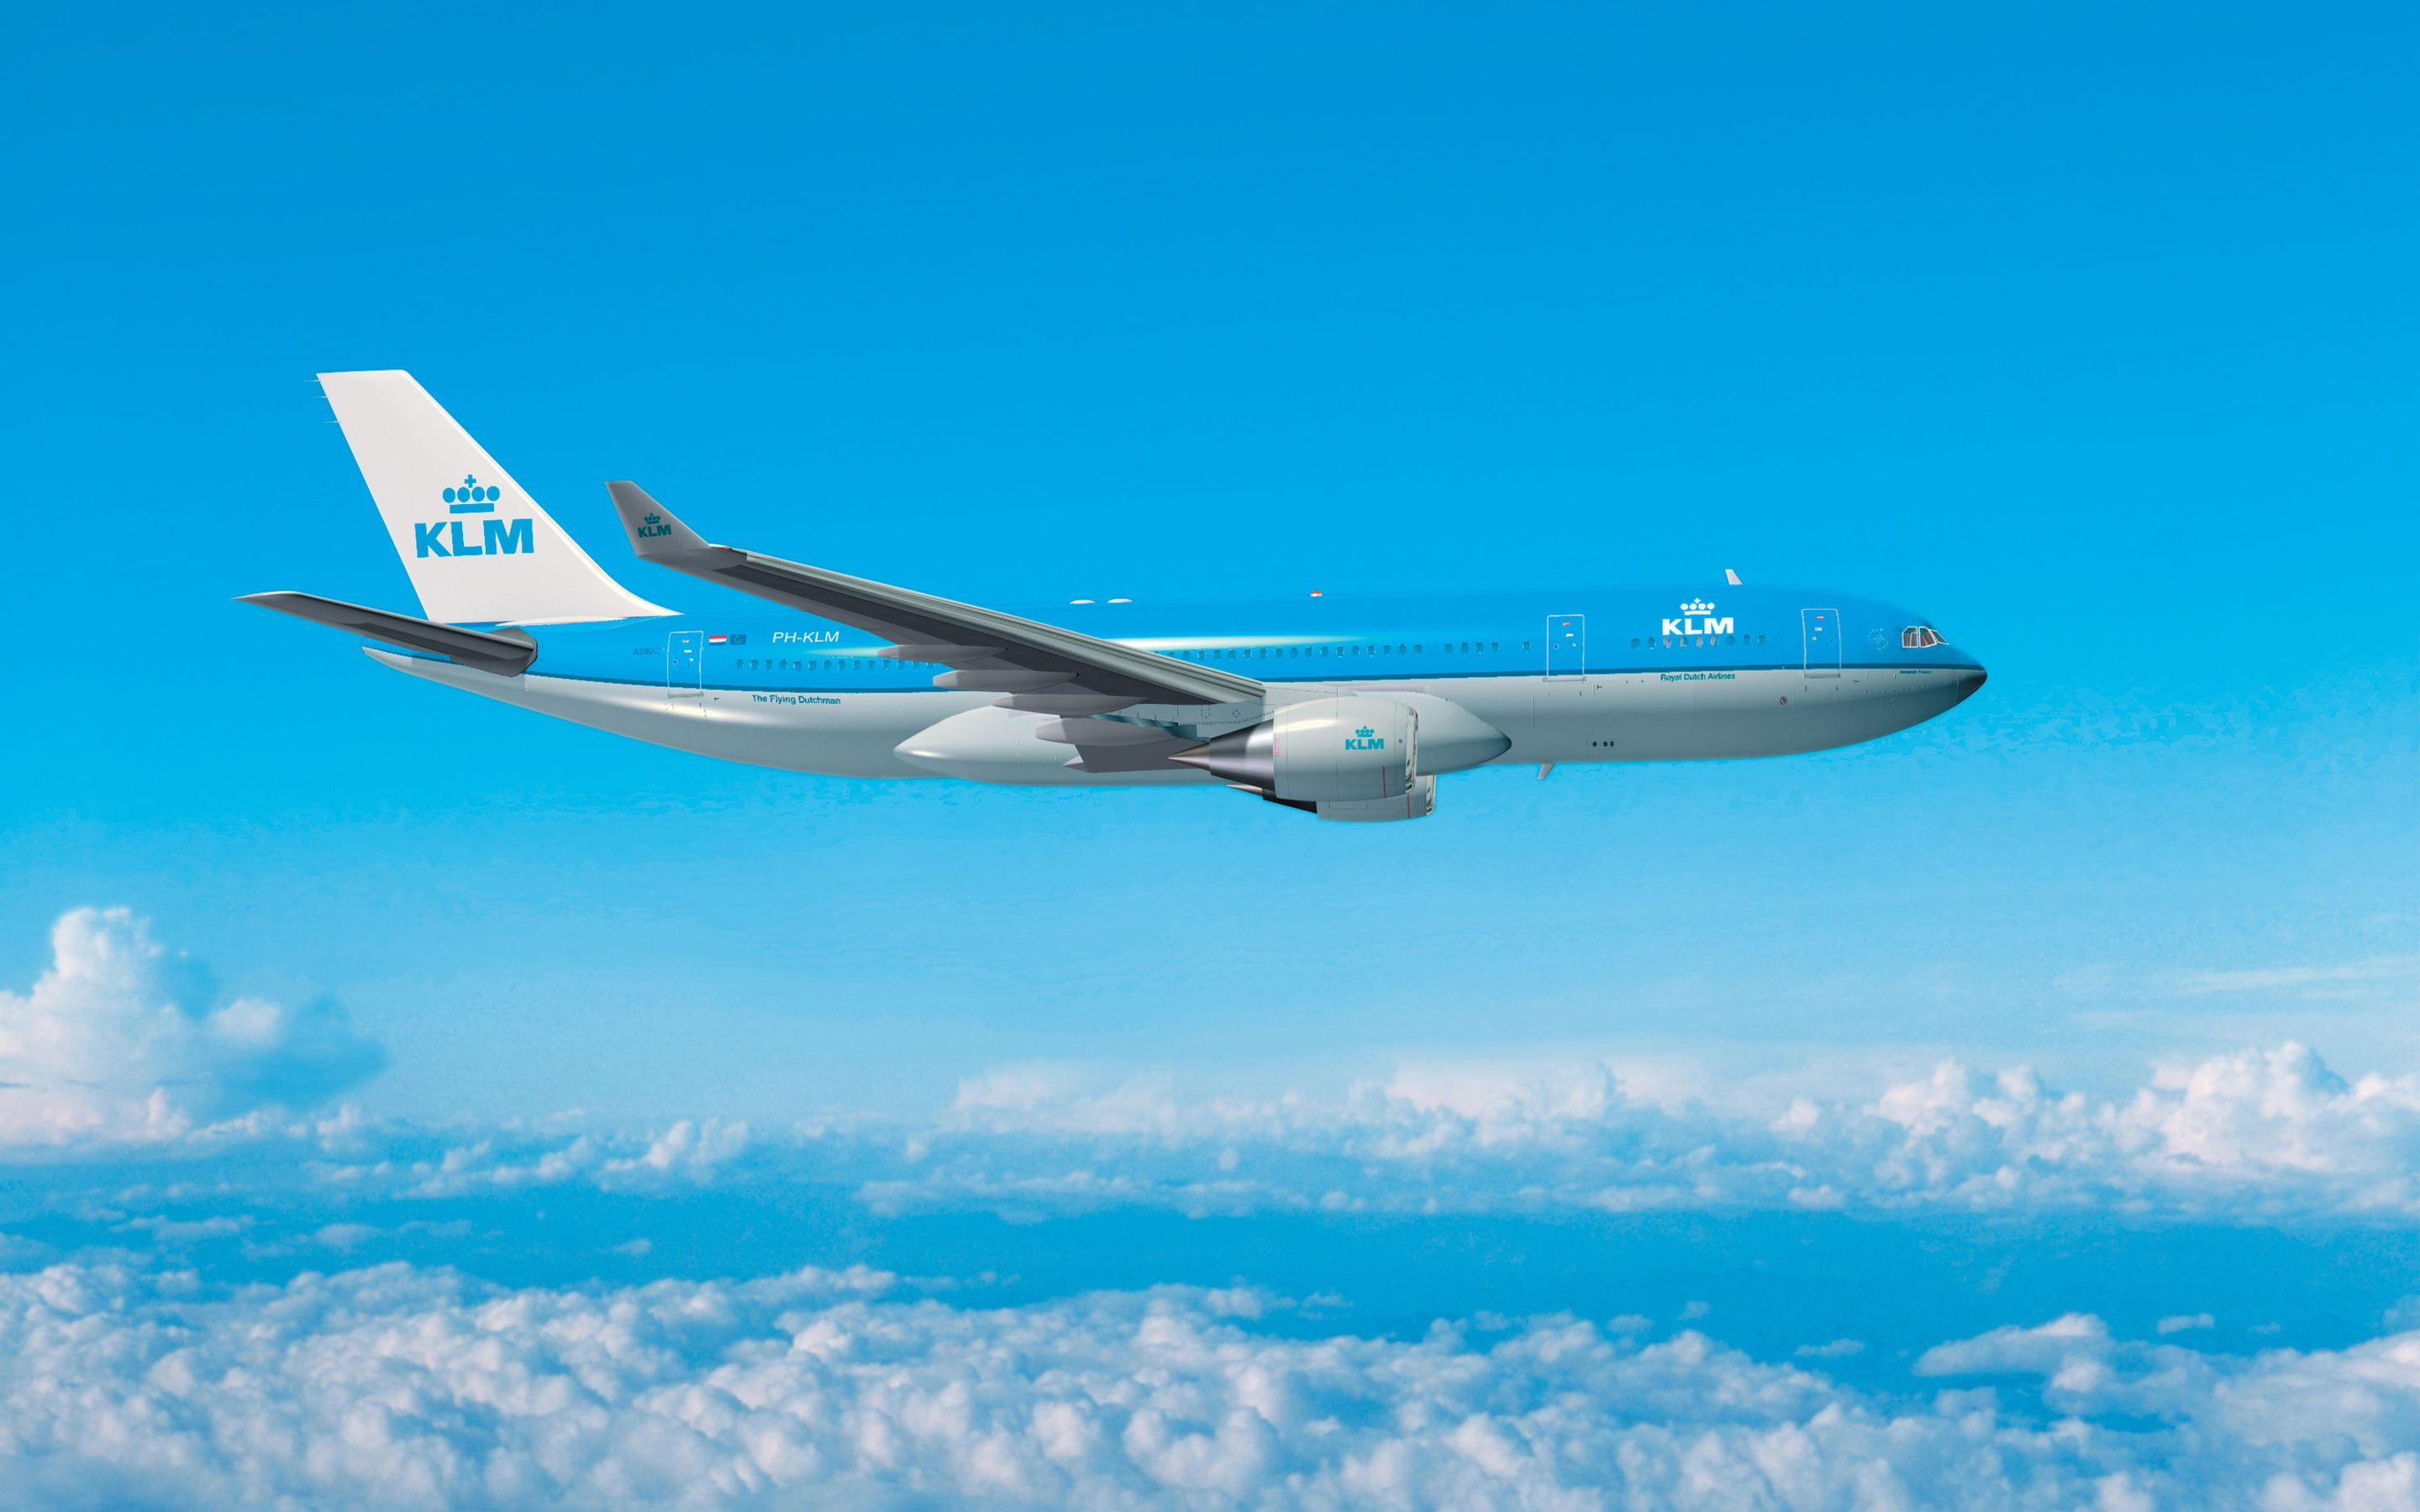 2880x1800 Download wallpapers Airbus A330-200, 4k, passenger plane ...